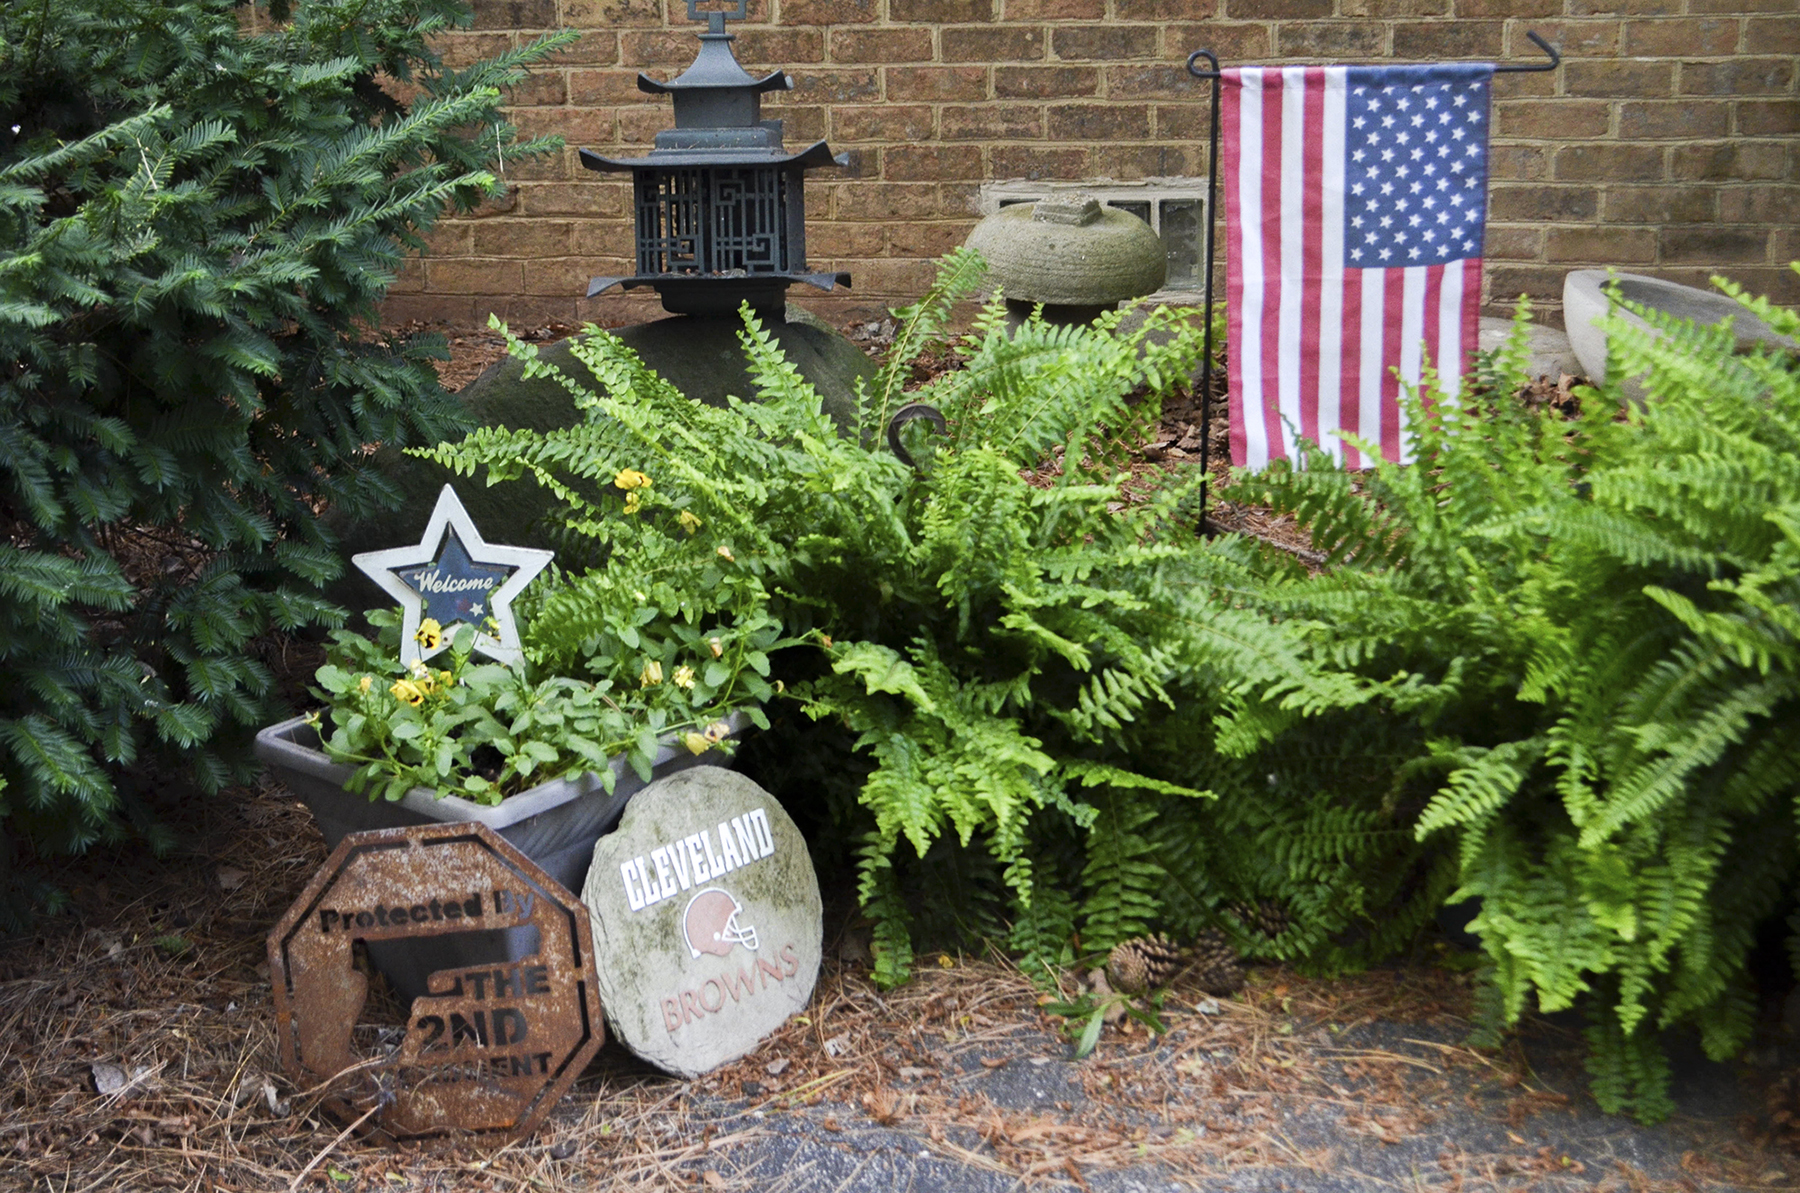 Kathy Miller, the Mahoning County chairwoman for Donald Trump, decorated her garden in Boardman, Ohio, with a pro-gun-rights sign, a Cleveland Browns sign and an American flag. She said people are fed up with the direction of the country and are looking to Trump for change. (Lian Bunny/News21)